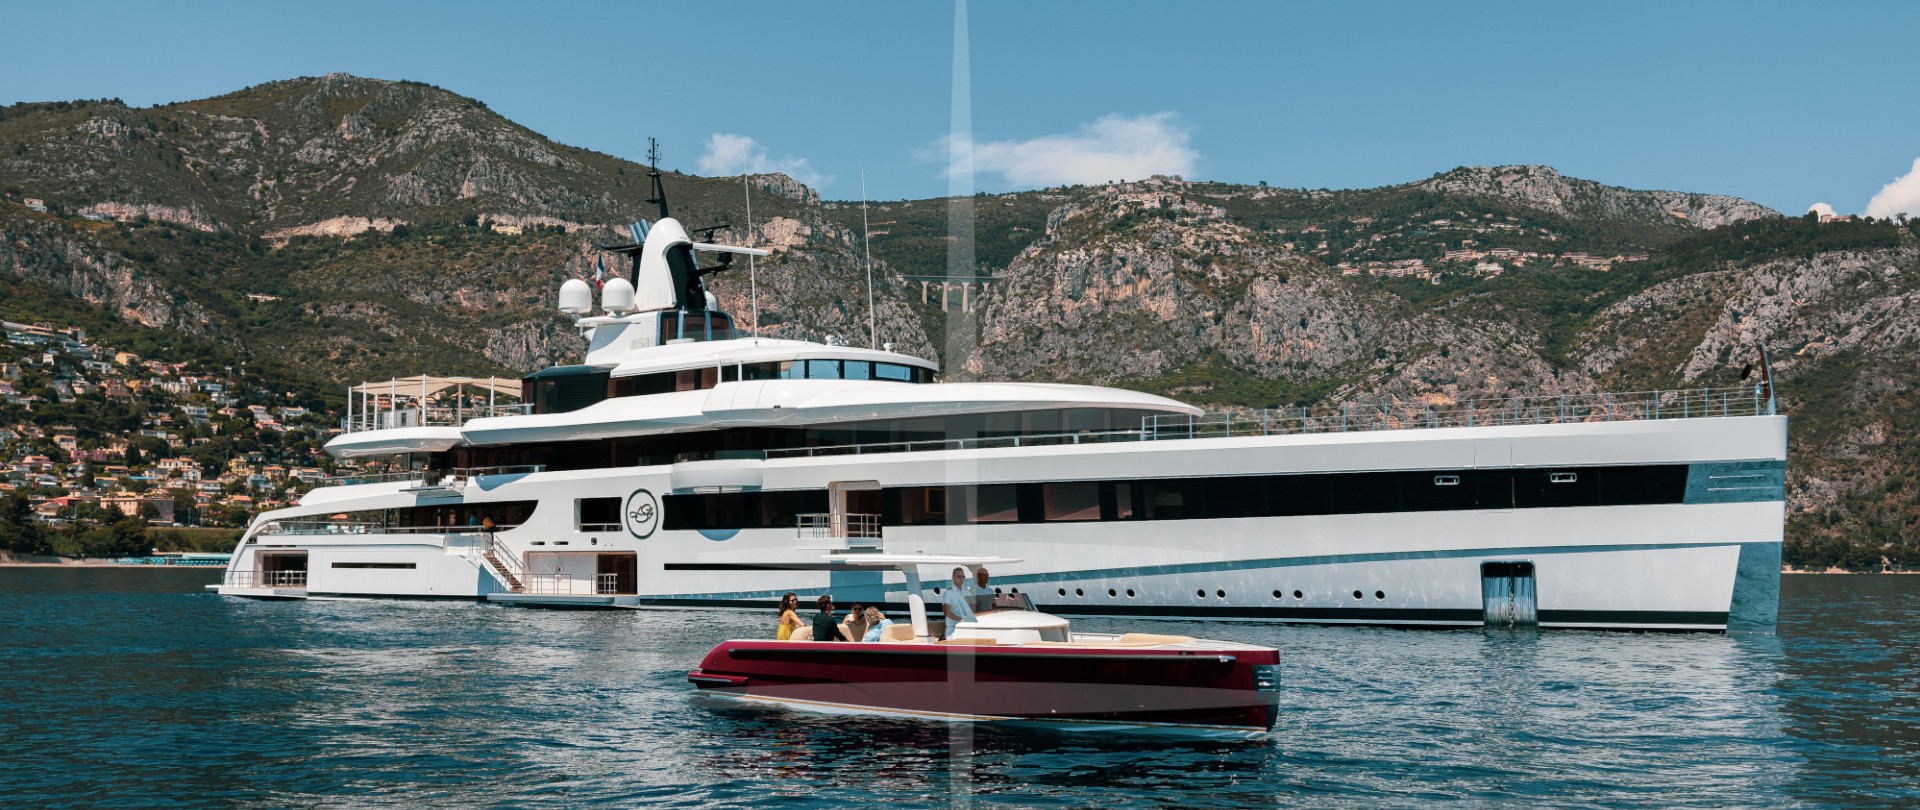 Luxury charter yacht Lady S wins two major awards photo 1